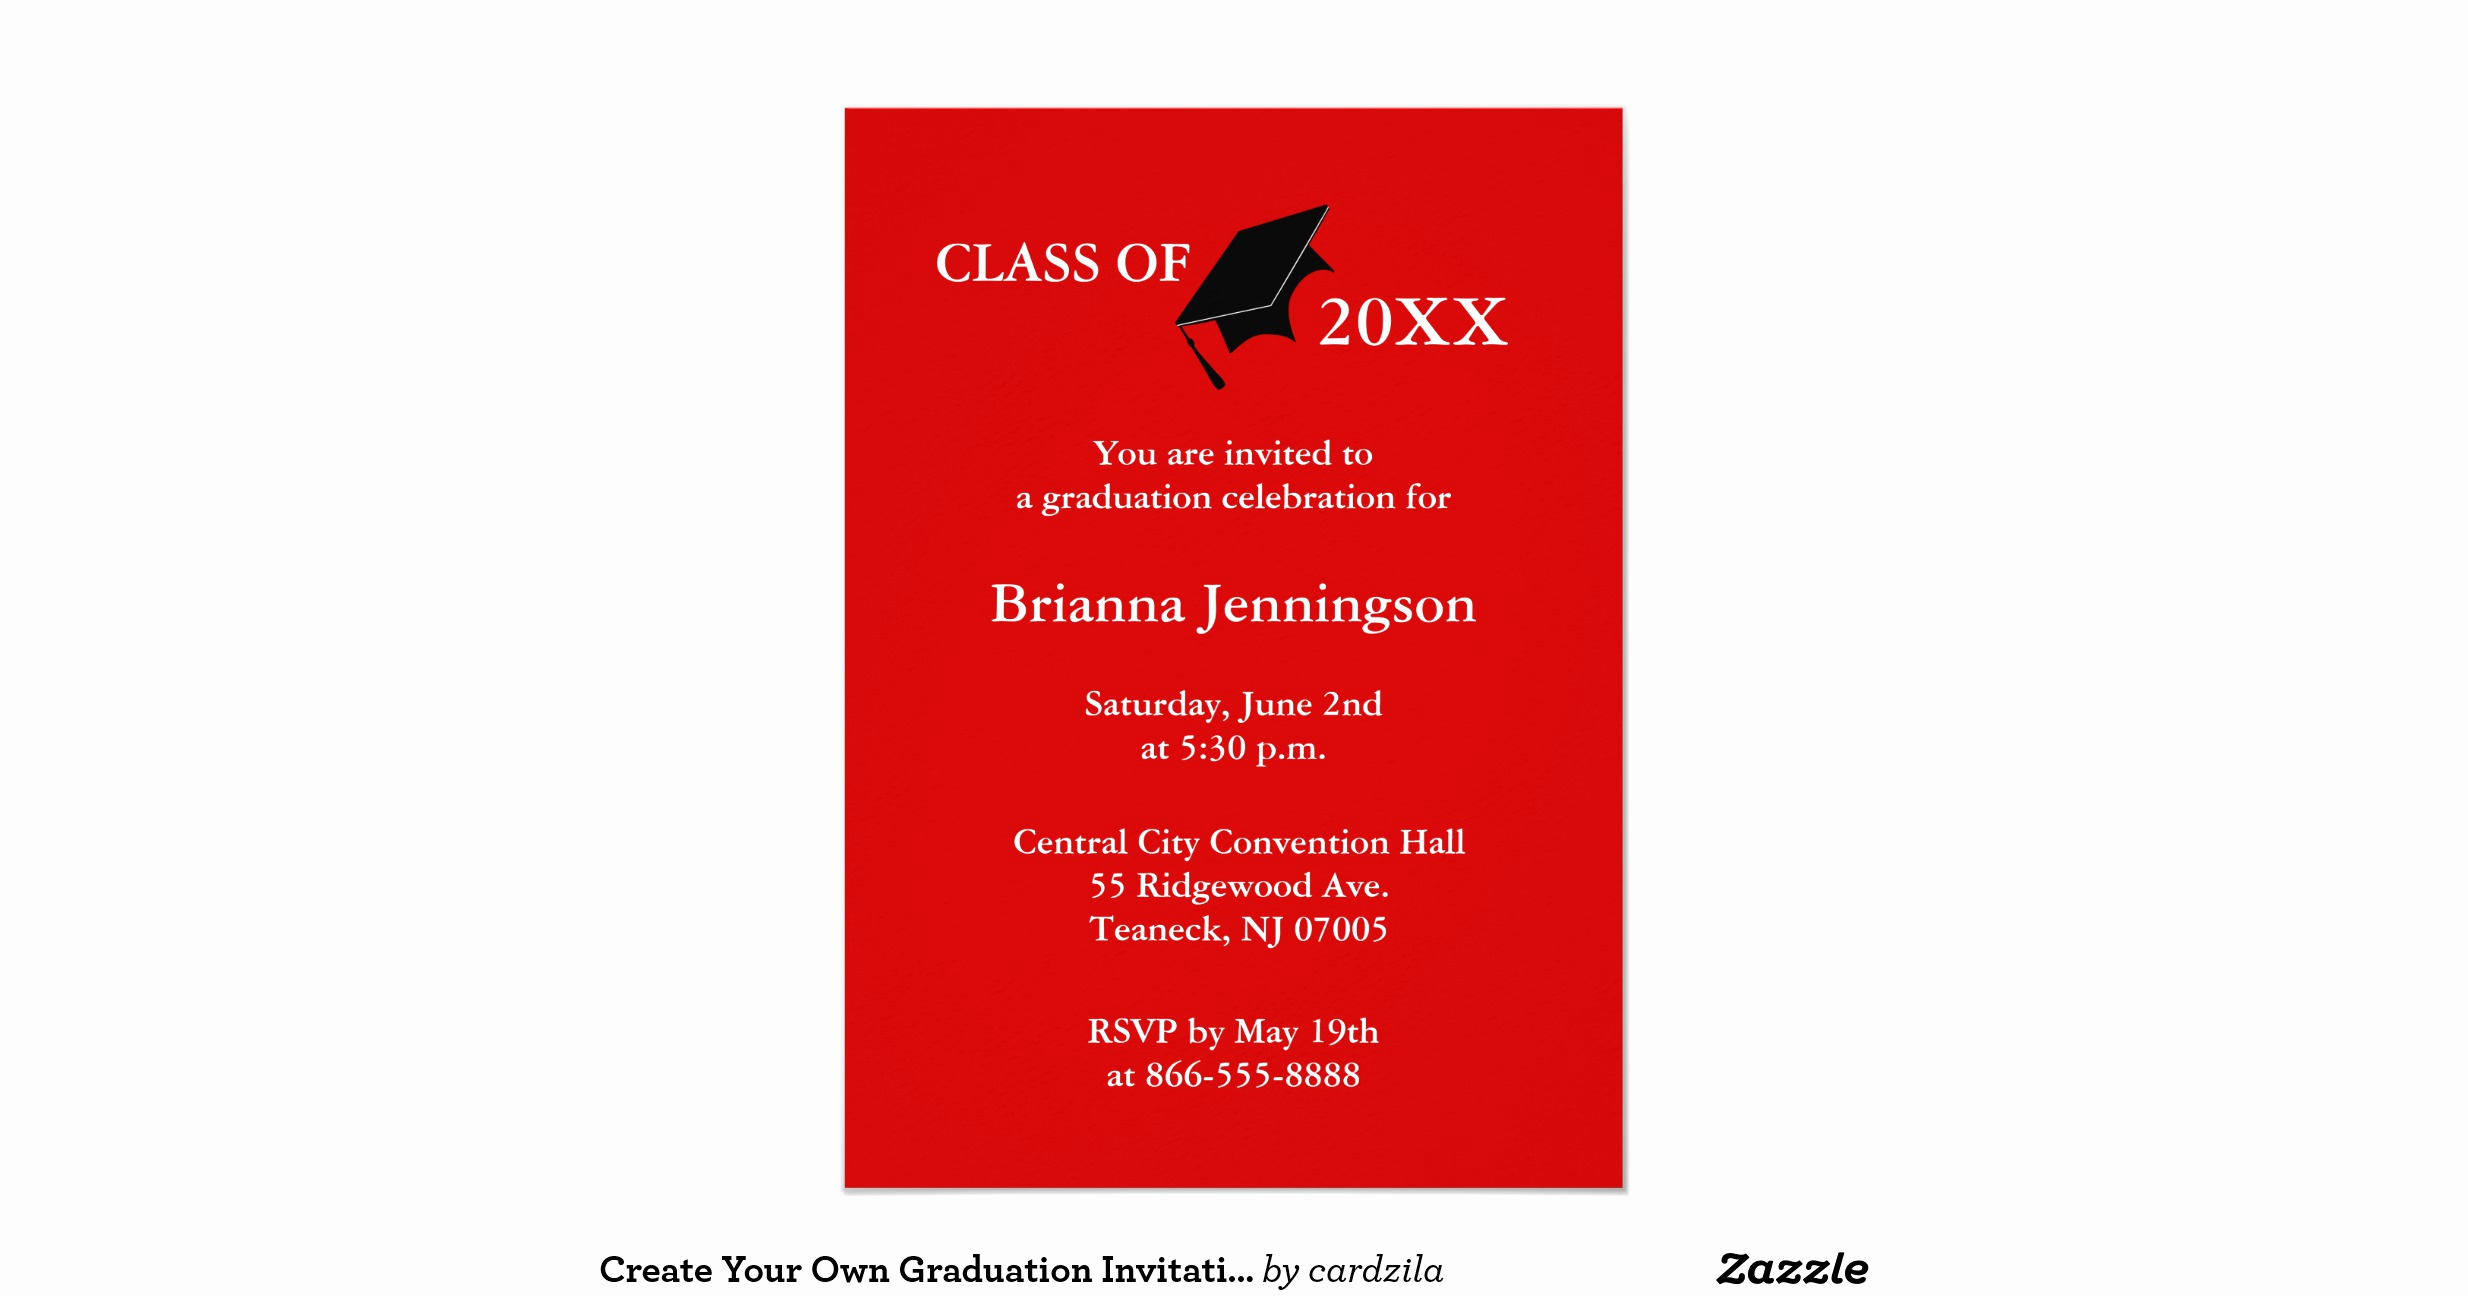 Create A Graduation Invitation Luxury Create Your Own Graduation Invitation 6